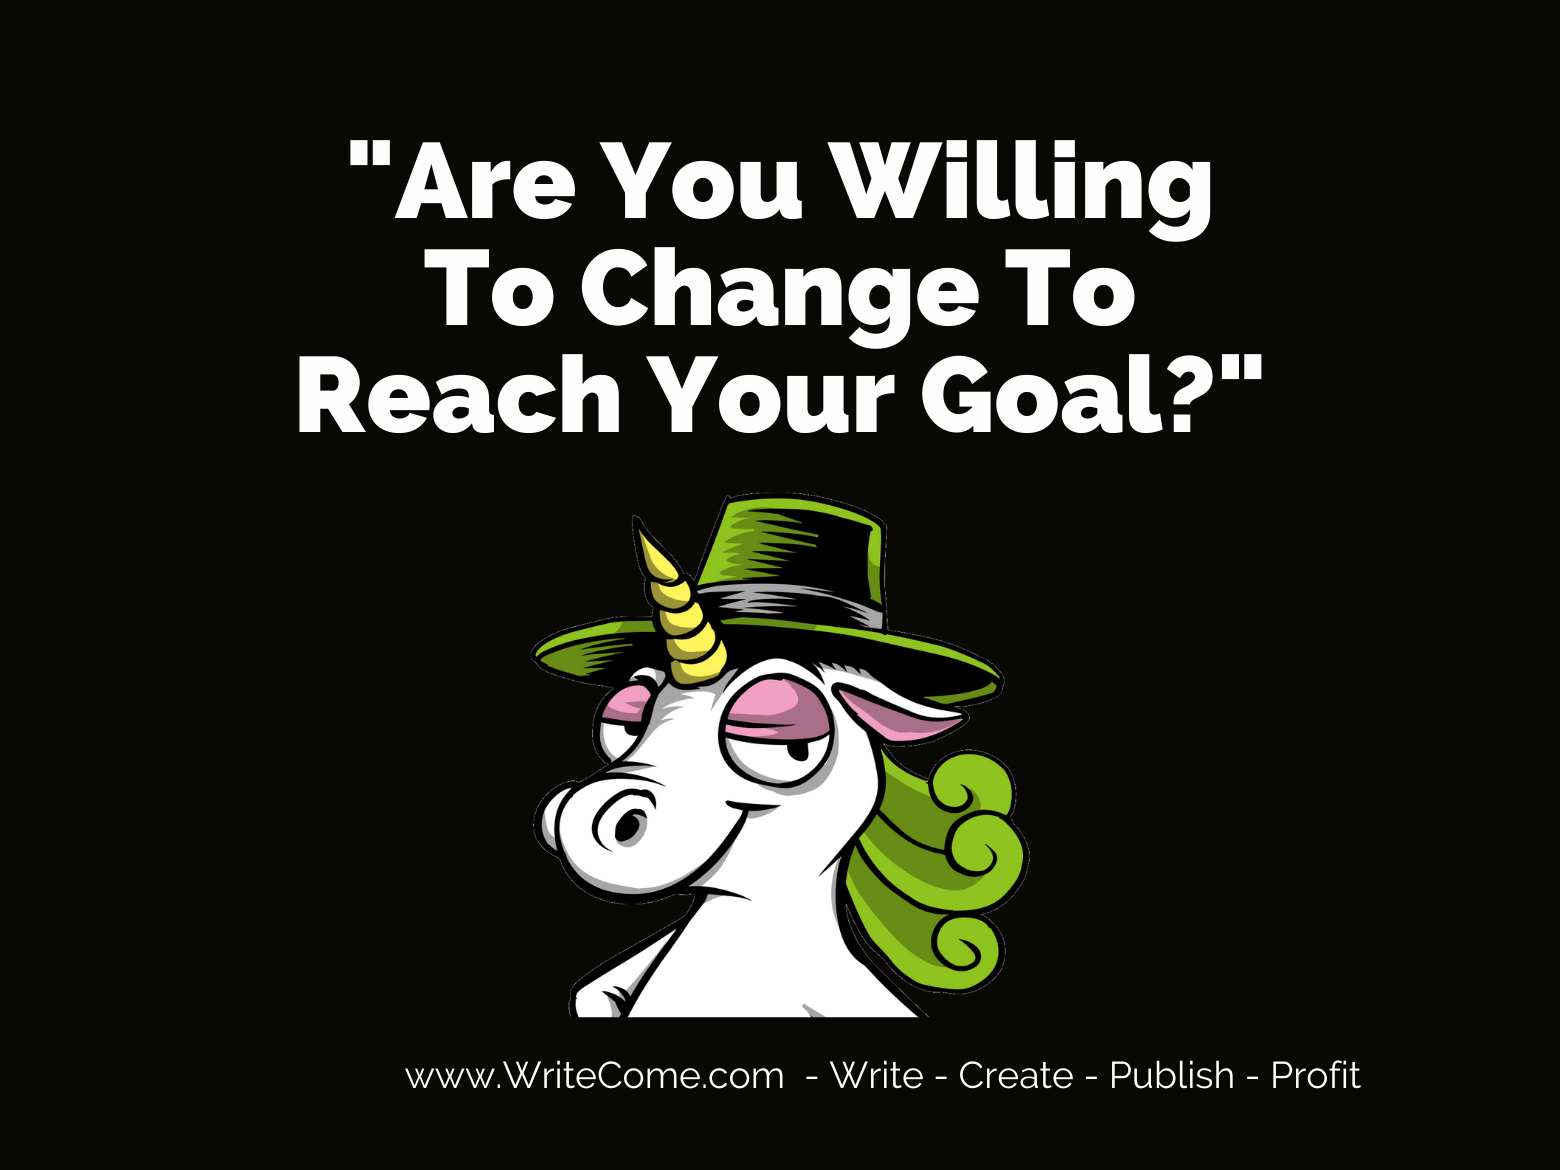 Are You Willing To Change To Reach Your Goal?